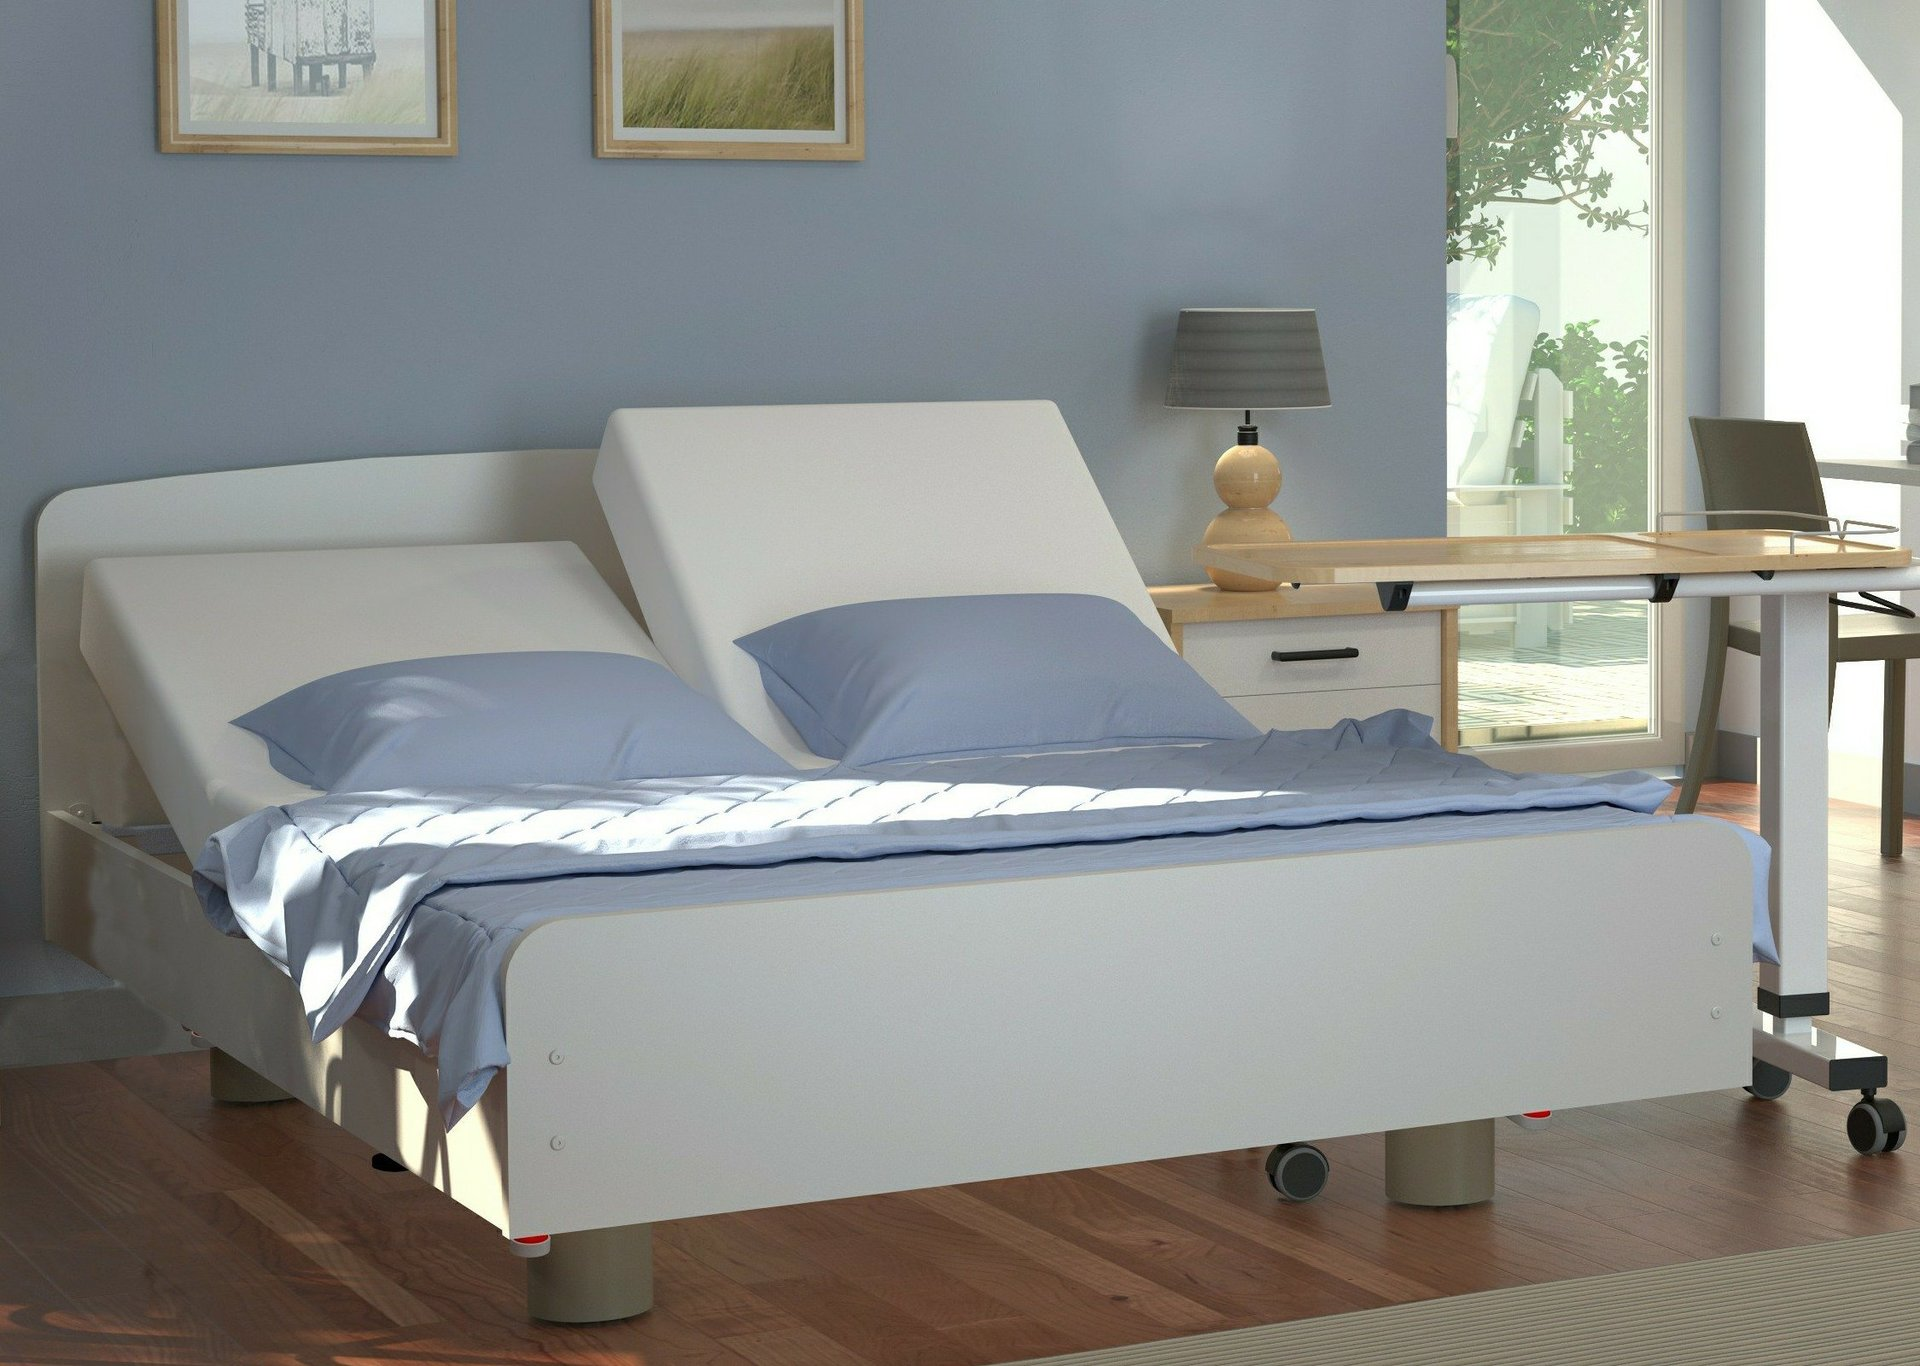 How Will Adding An Adjustable Bed Will Add Quality To Your Life